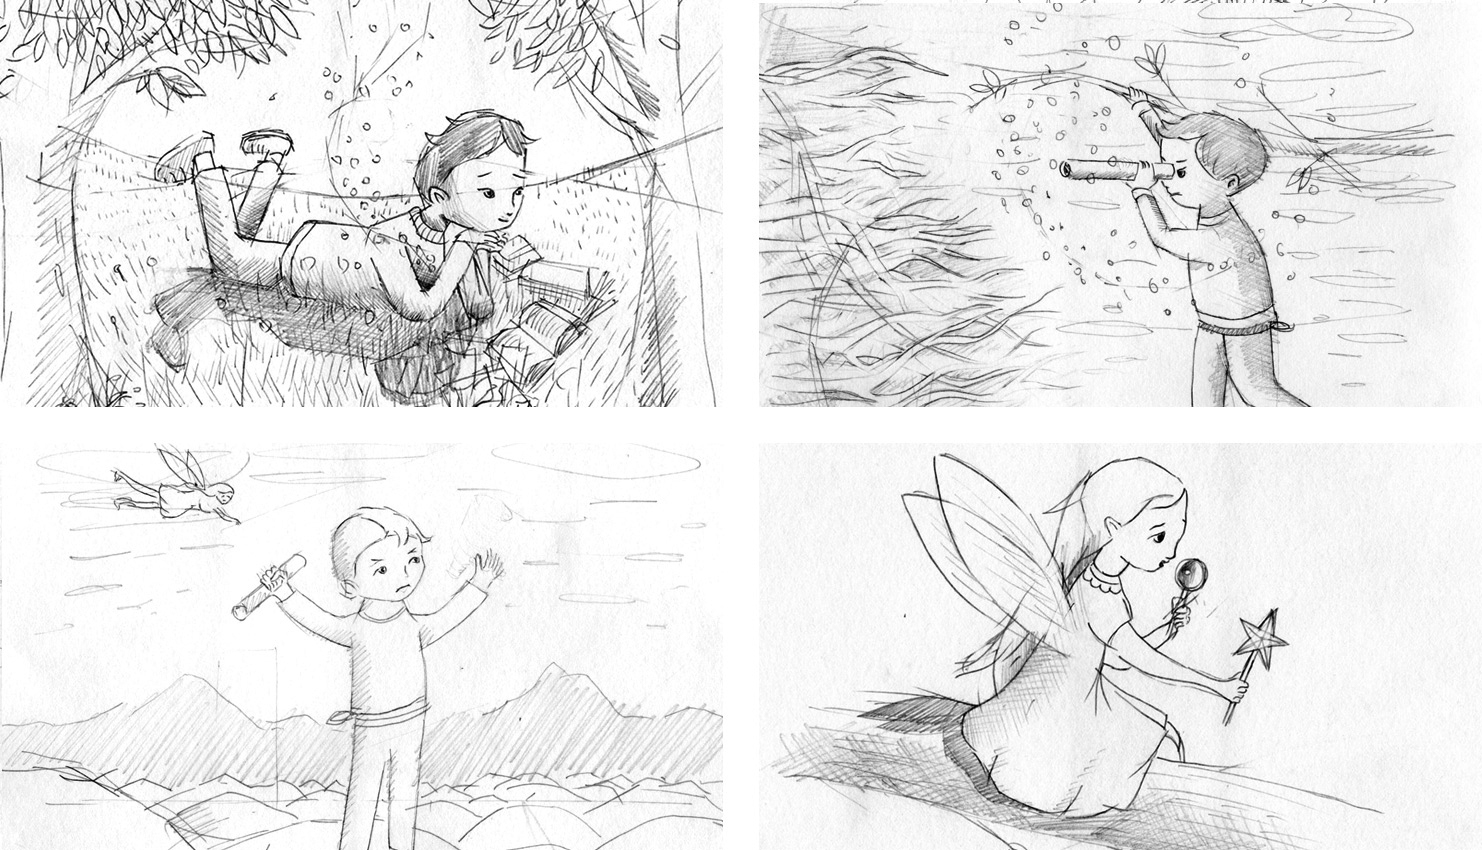 Initial sketches.